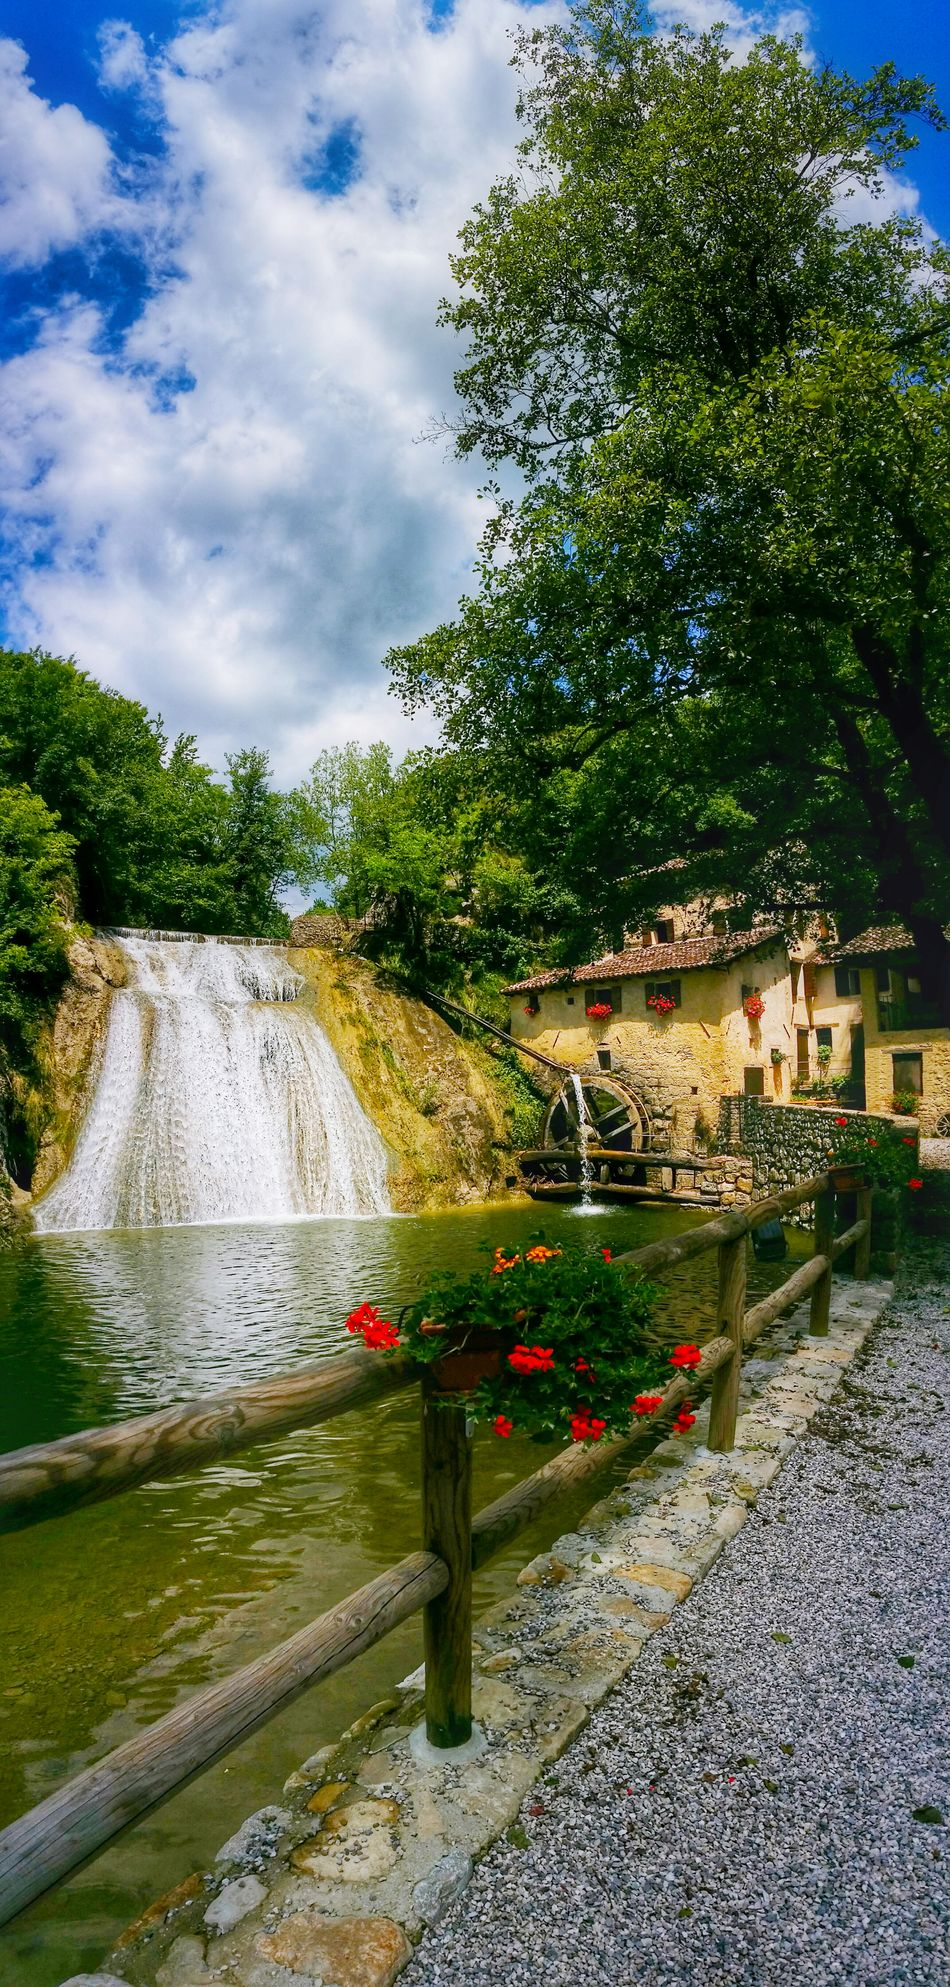 Lierza River Molinetto Della Croda Refrontolo Treviso Veneto Italy Travel Photography Travel Voyage Traveling Mobile Photography Fine Art Panoramic Views Vertical Landscapes Idyllic Sceneries Relaxing Moments Spectacular Landscapes Architecture Watermills Waterfalls Wooden Railings Trees And Clouds Patterns Reflections And Shadows Fine Art Photography Showcase July